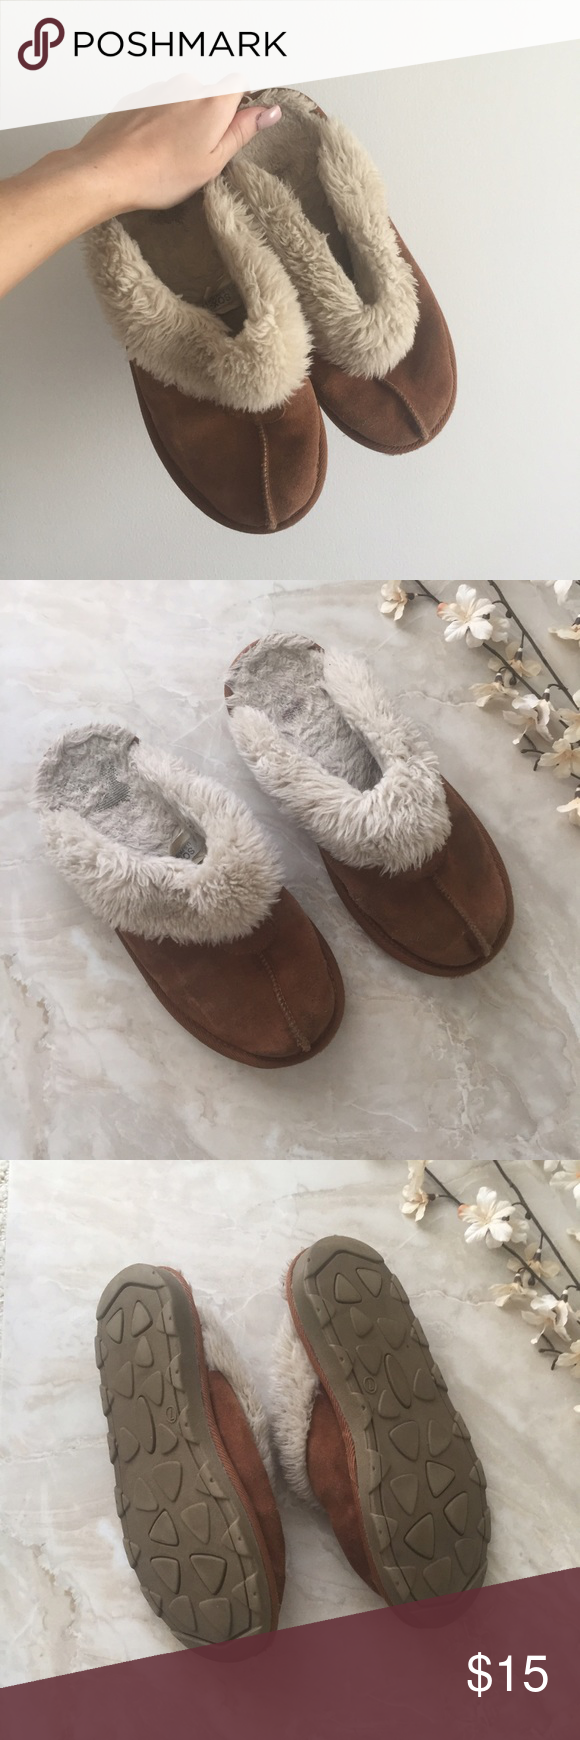 SOX-TAB Winter Slip Ons SOX-TAB Winter Slip Ons  * Gently used * Insoles worn  * Genuine suede & faux fur  * US women's 7 * Brown / Tan / Cream  Styling tip: Wear with tights & a skirt in the winter ❄️  Please, no trades, reasonable offers will be considered, & will ship within 1 business day ✨    8/16: uO40p15LO9-6m7 Sox-Tab Shoes Mules & Clogs